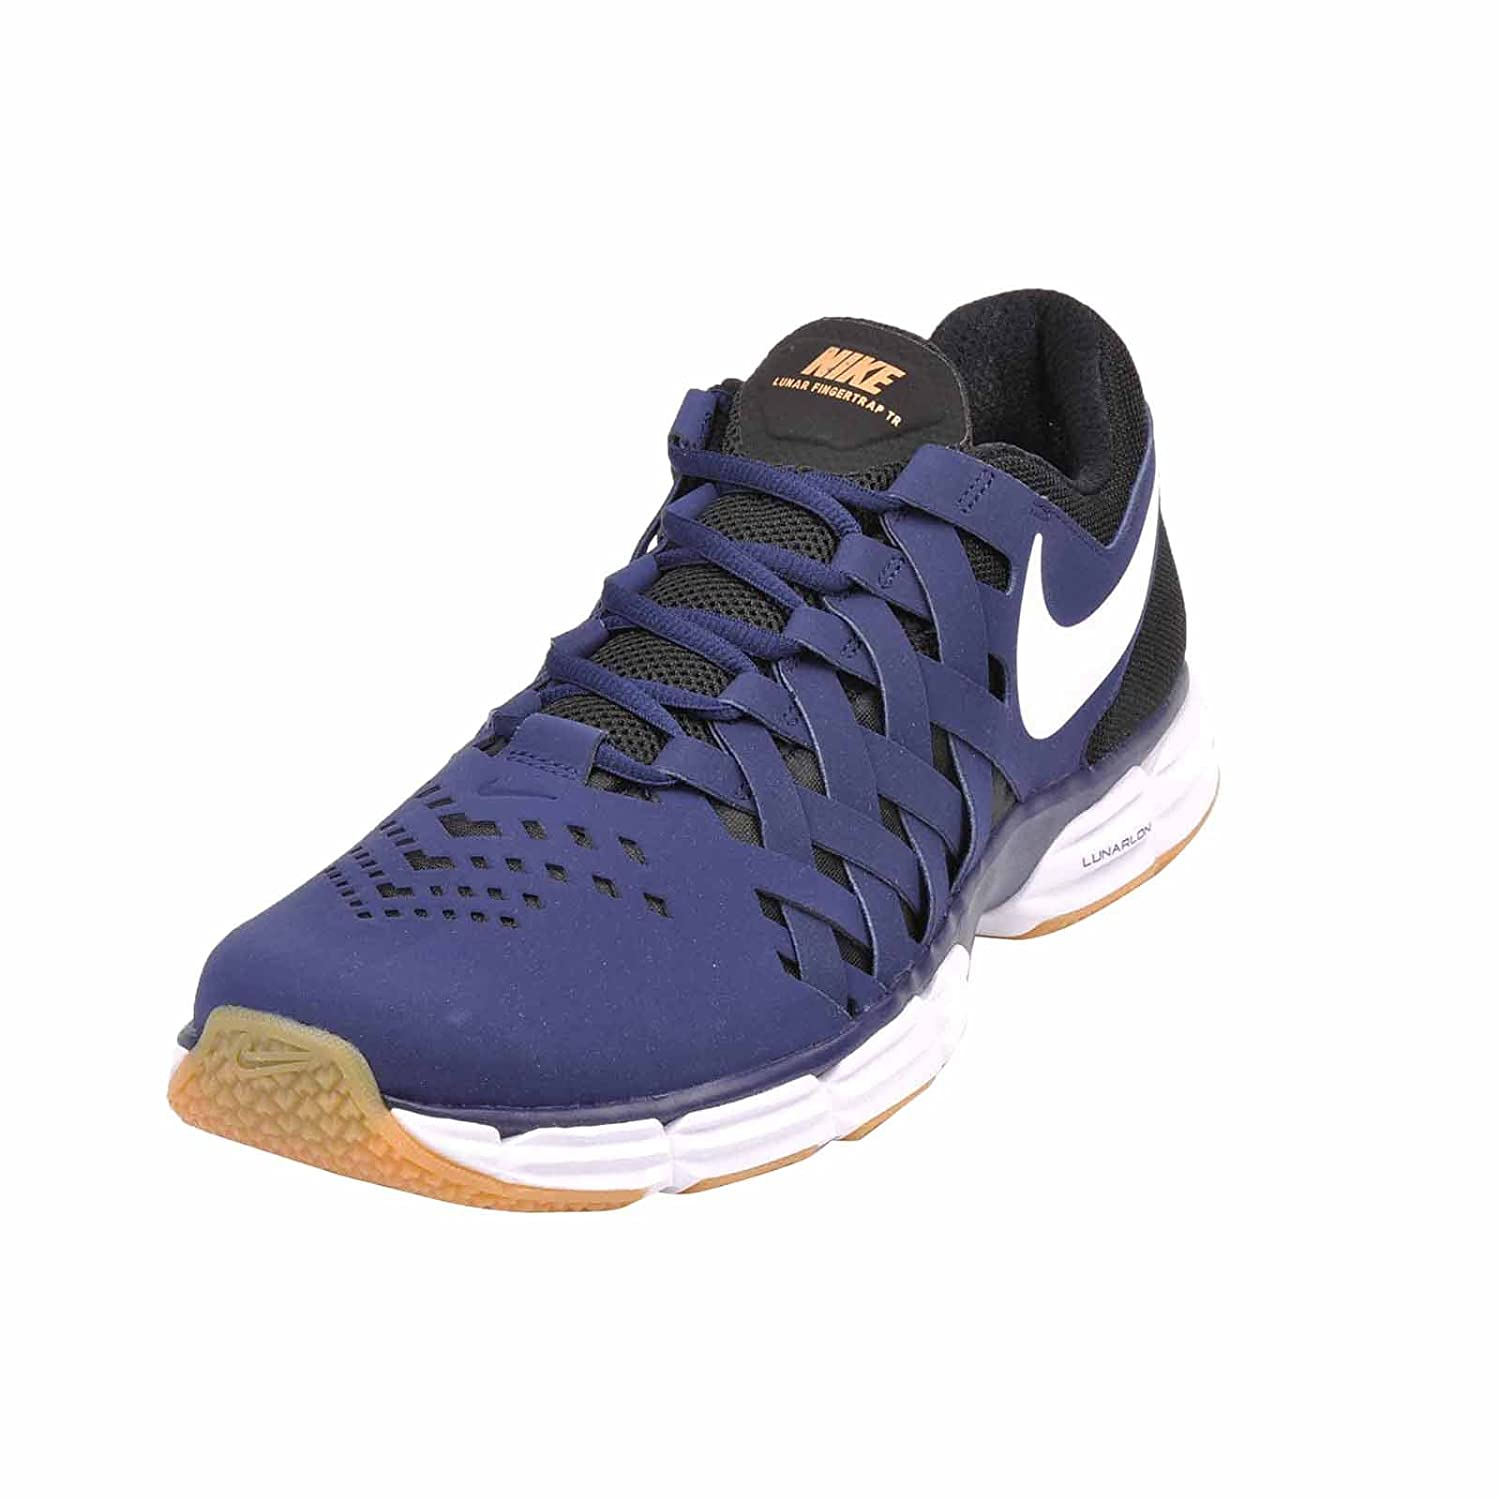 NIKE Men's Lunar Fingertrap Cross Trainer B06VWRWD8N 11 D(M) US|Binary Blue White Black